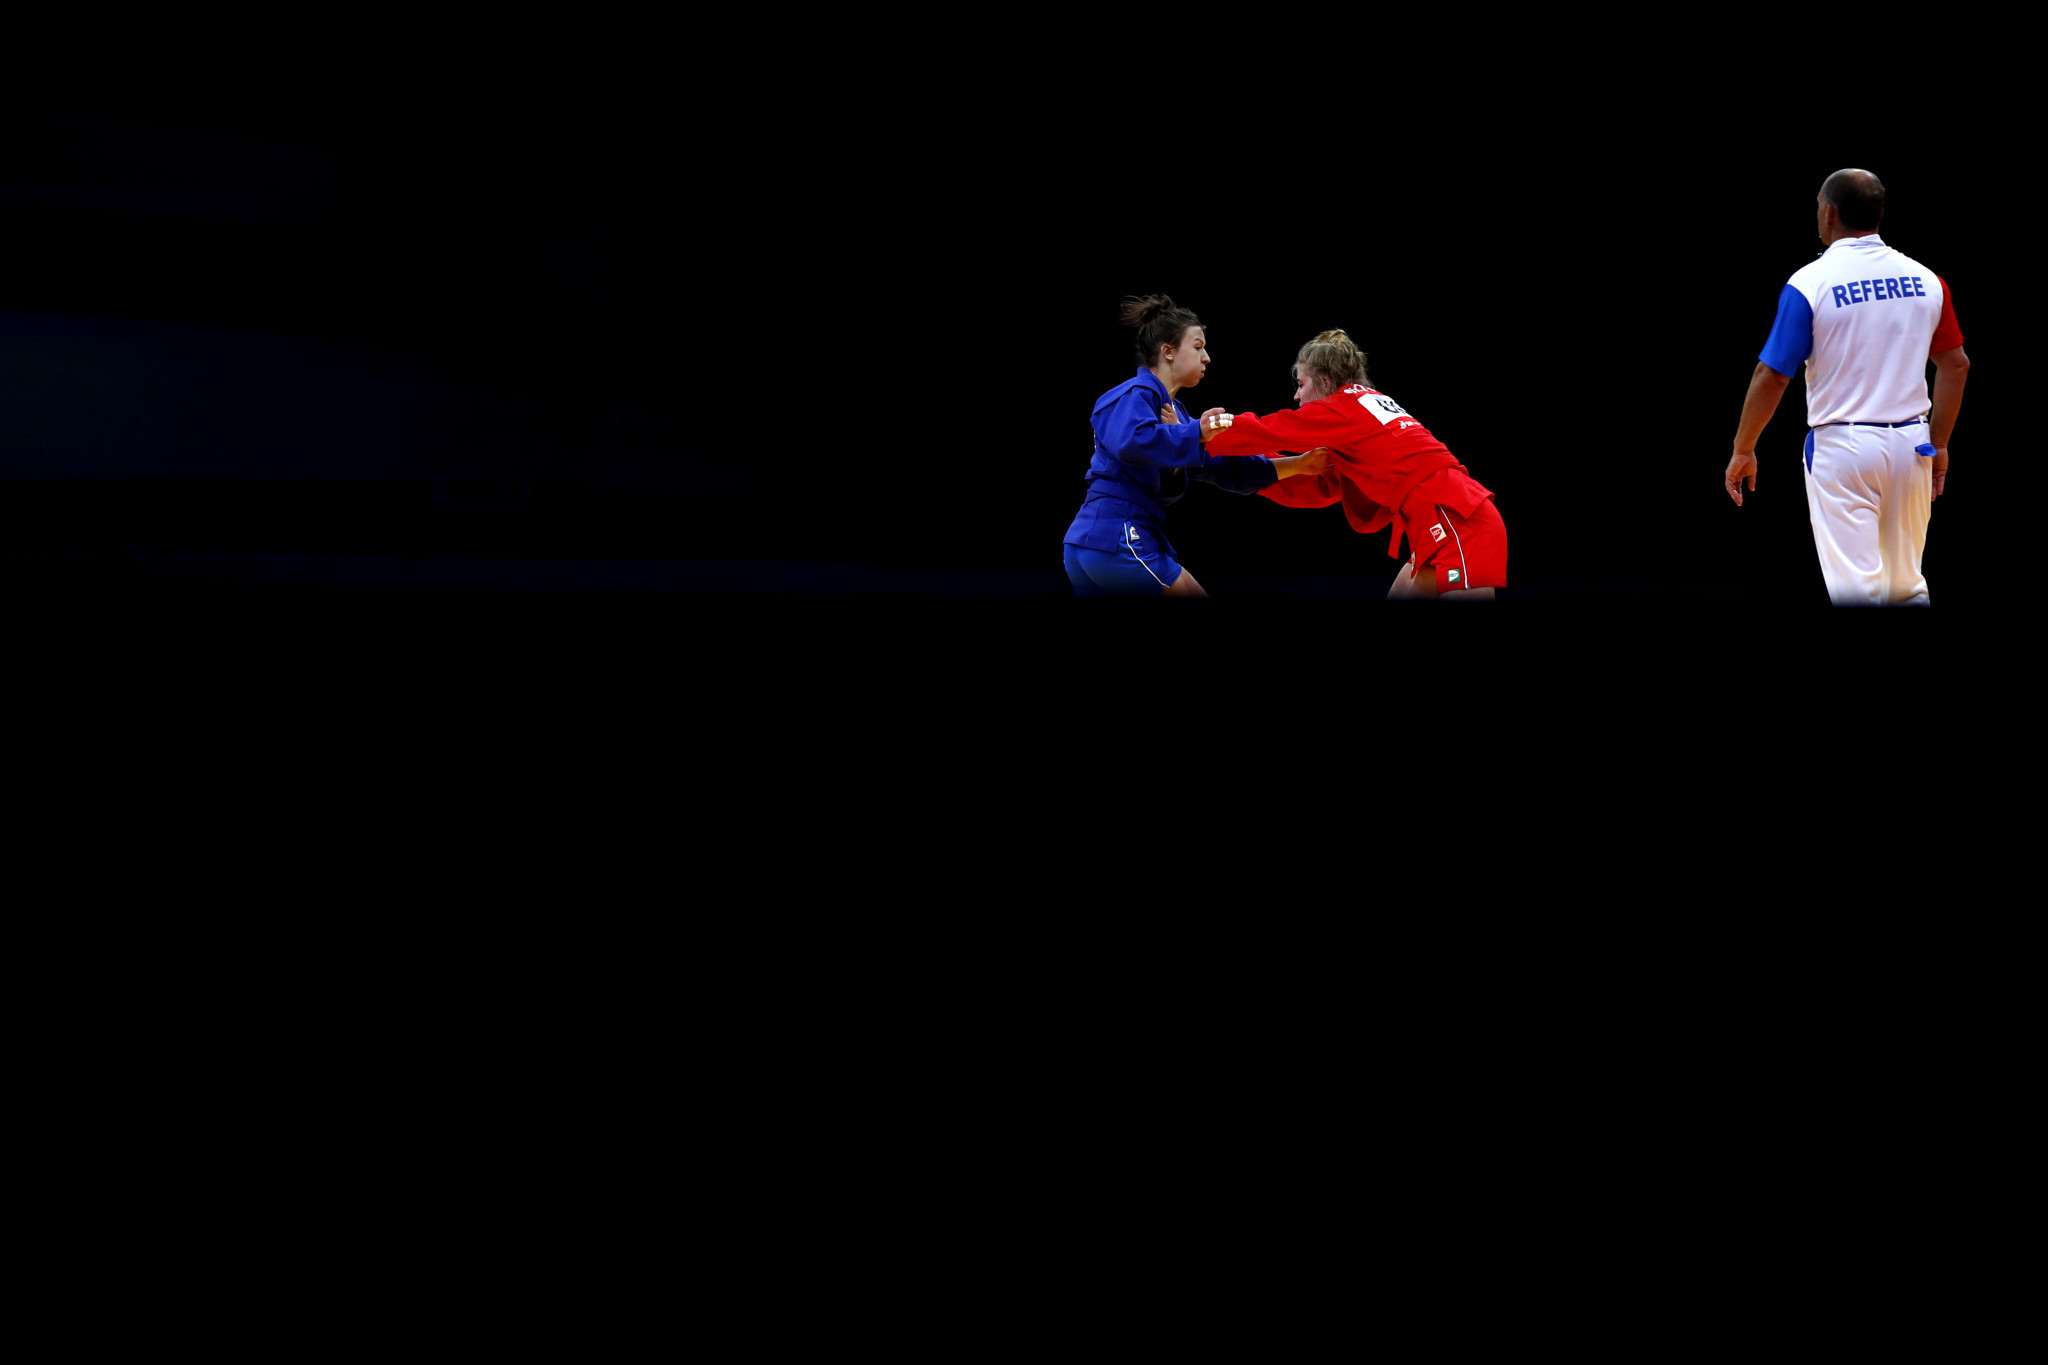 Yekaterinburg was scheduled to stage last year's European Sambo Championships only for it to be cancelled because of the coronavirus pandemic ©Getty Images